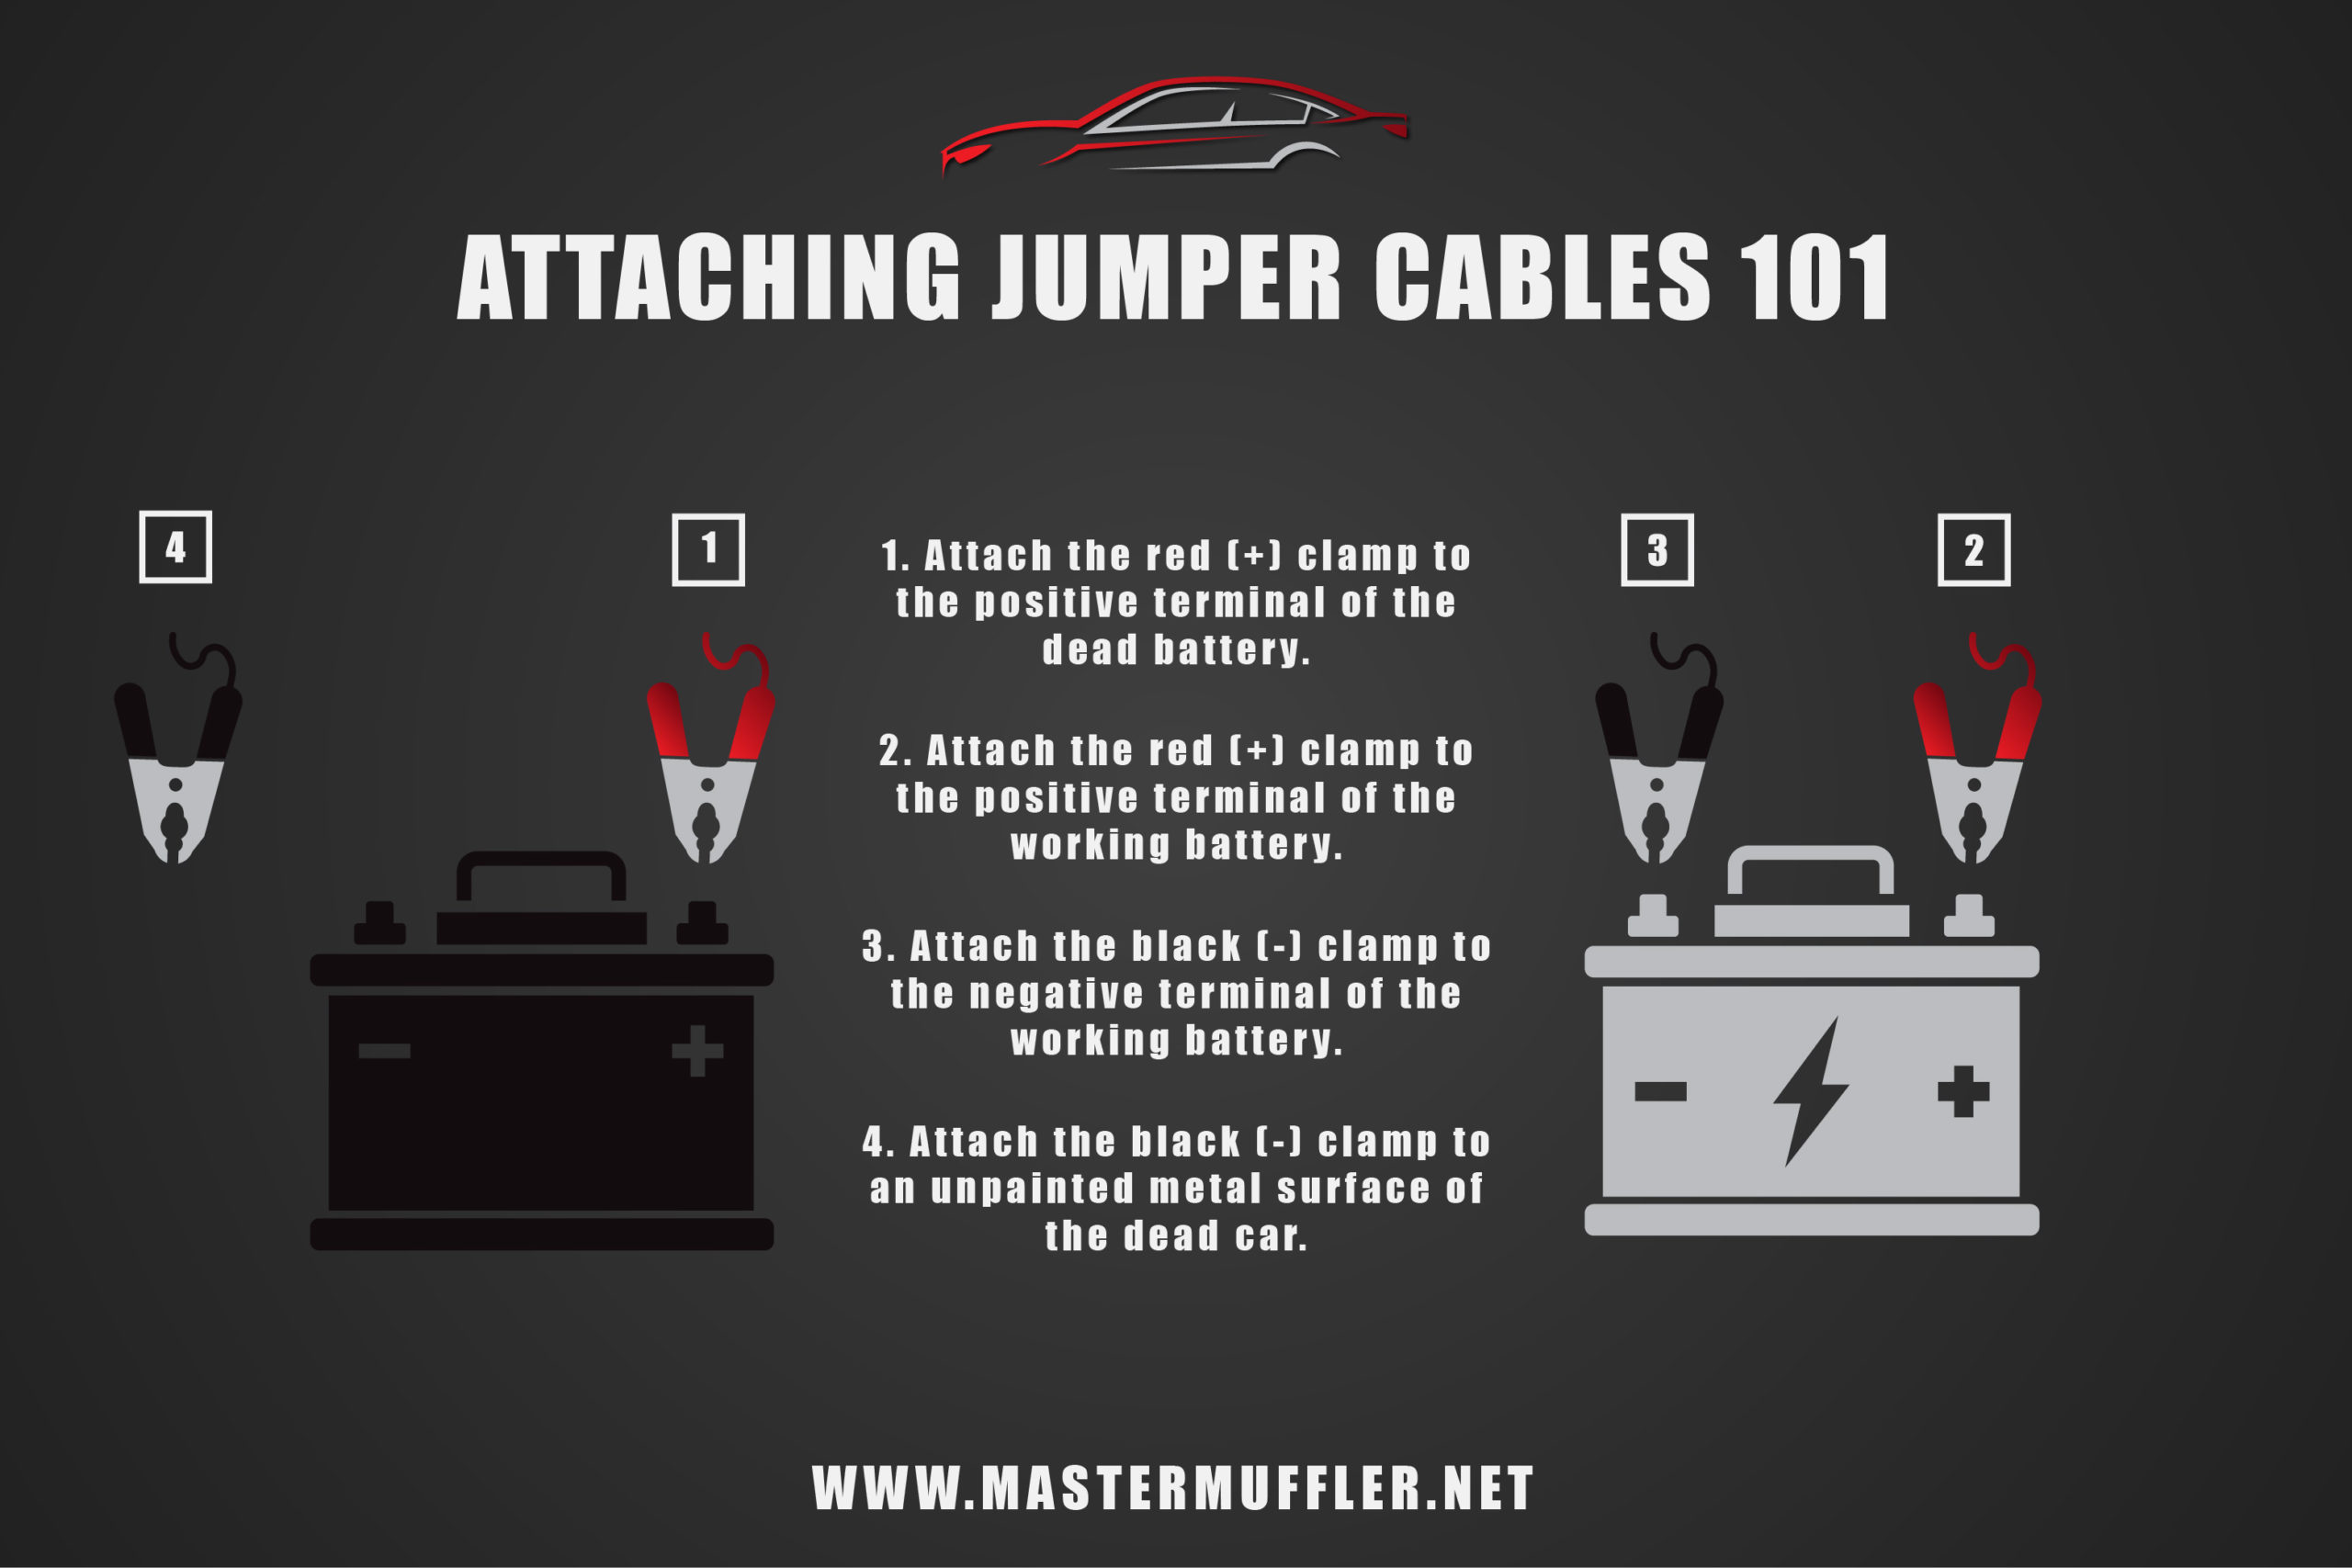 Auto repair infographic showing how to connect jumper cables